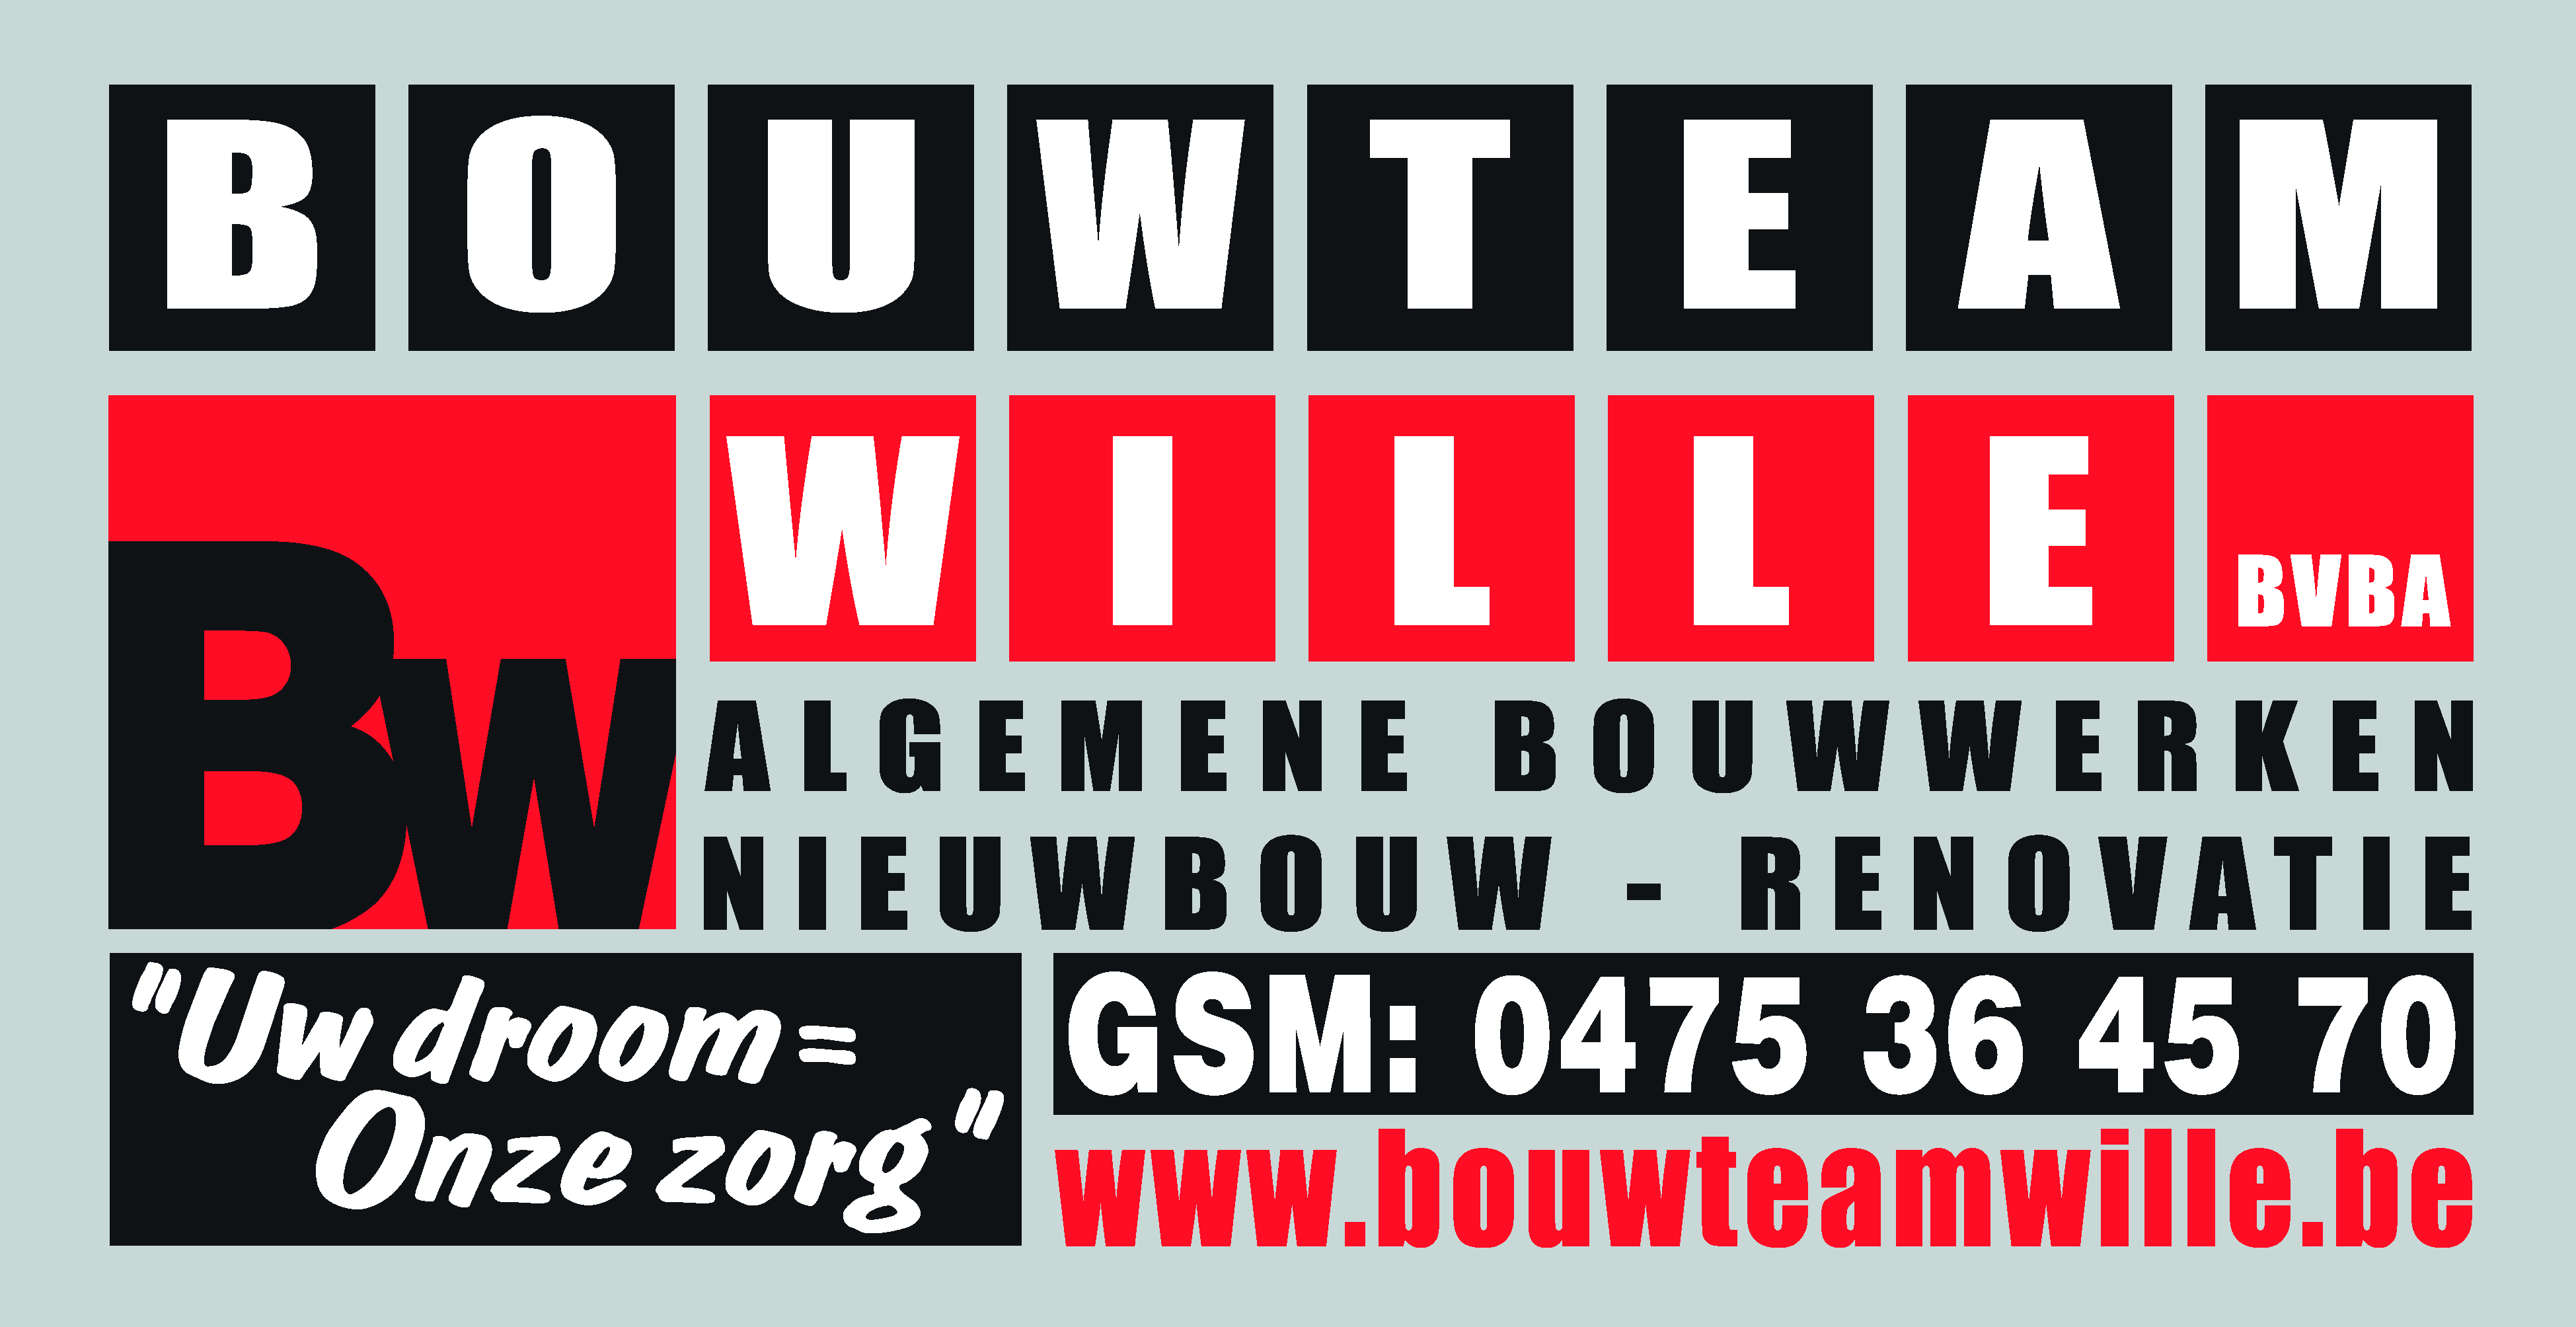 Bouwteam Wille